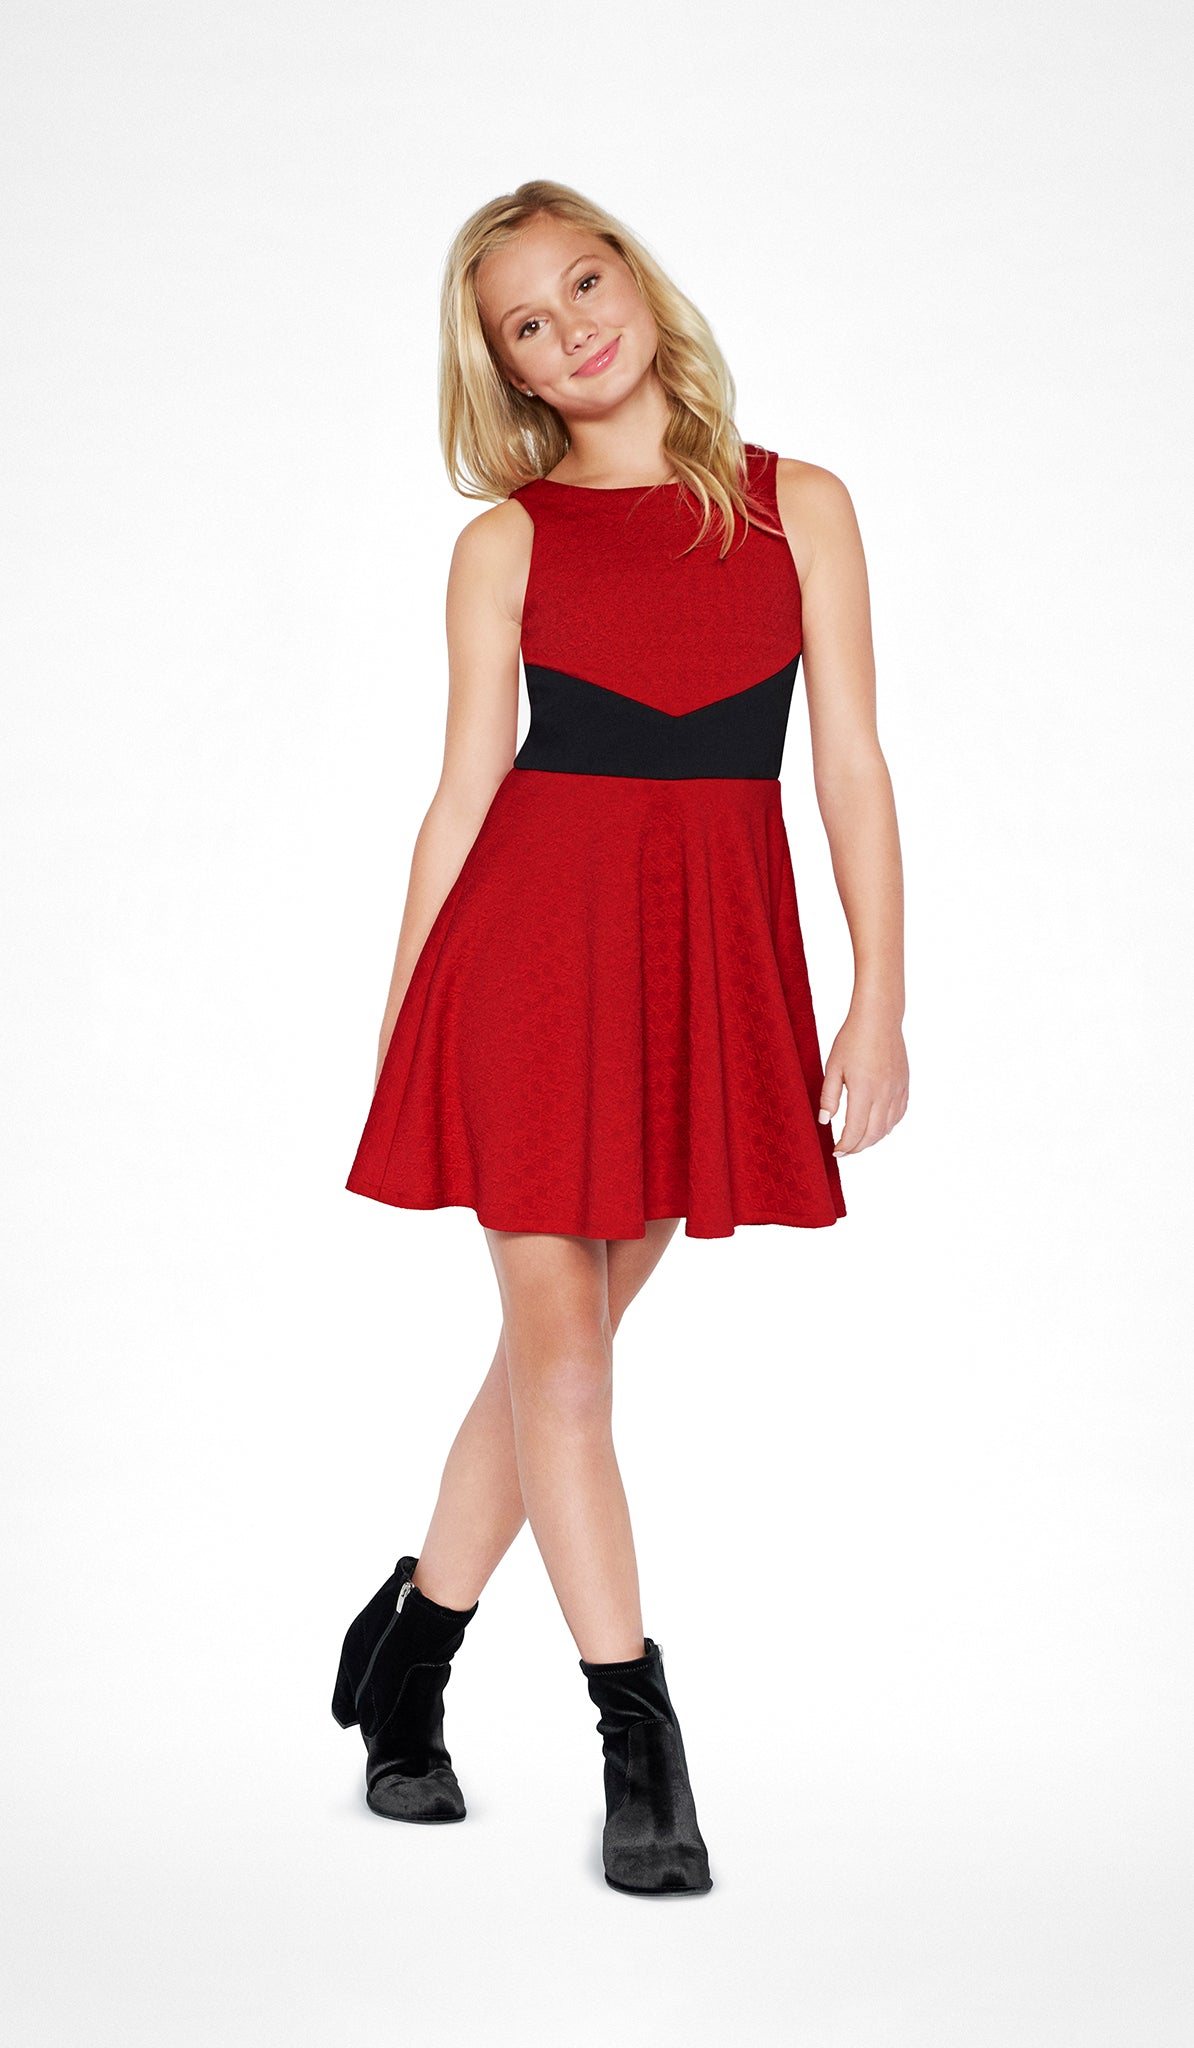 THE SCARLET DRESS - Sallymiller.com - [variant title] - | Event & Party Dresses for Tween Girls & Juniors | Weddings Dresses, Bat Mitzvah Dresses, Sweet Sixteen Dresses, Graduation Dresses, Birthday Party Dresses, Bar Mitzvah Dresses, Cotillion Dresses